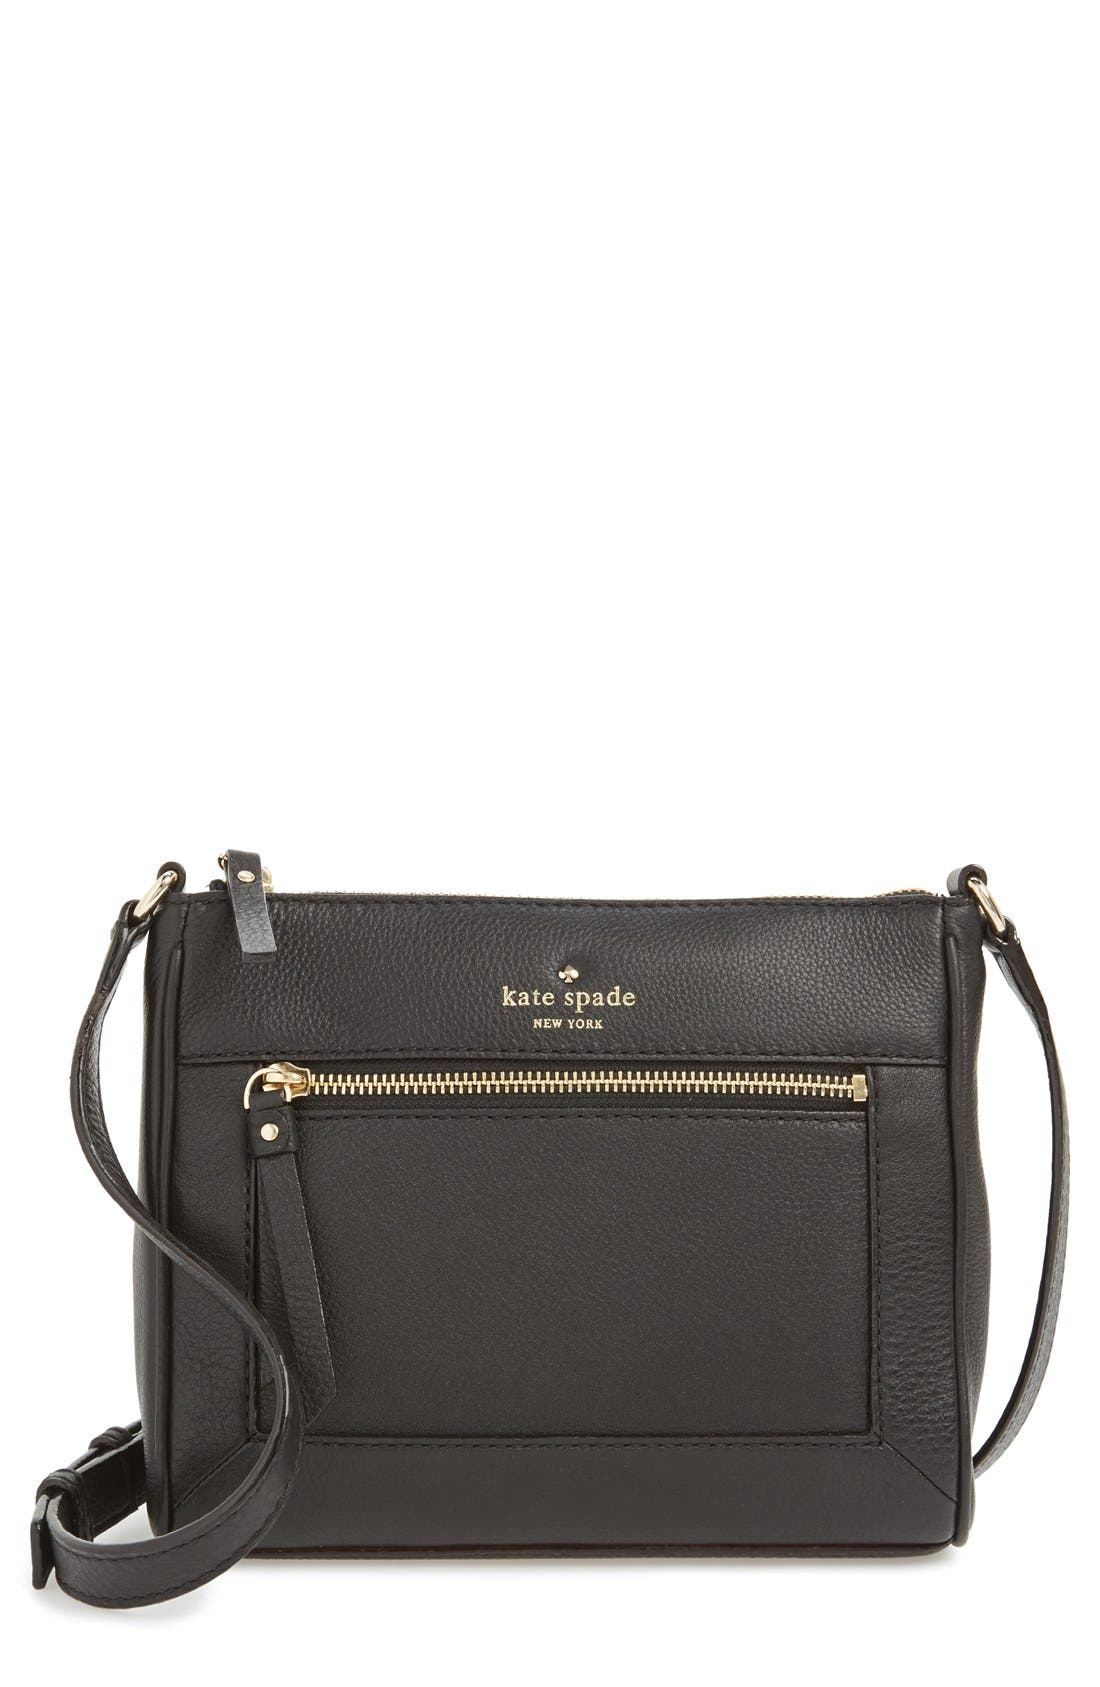 Main Image - kate spade new york 'cobble hill - deni' leather crossbody bag